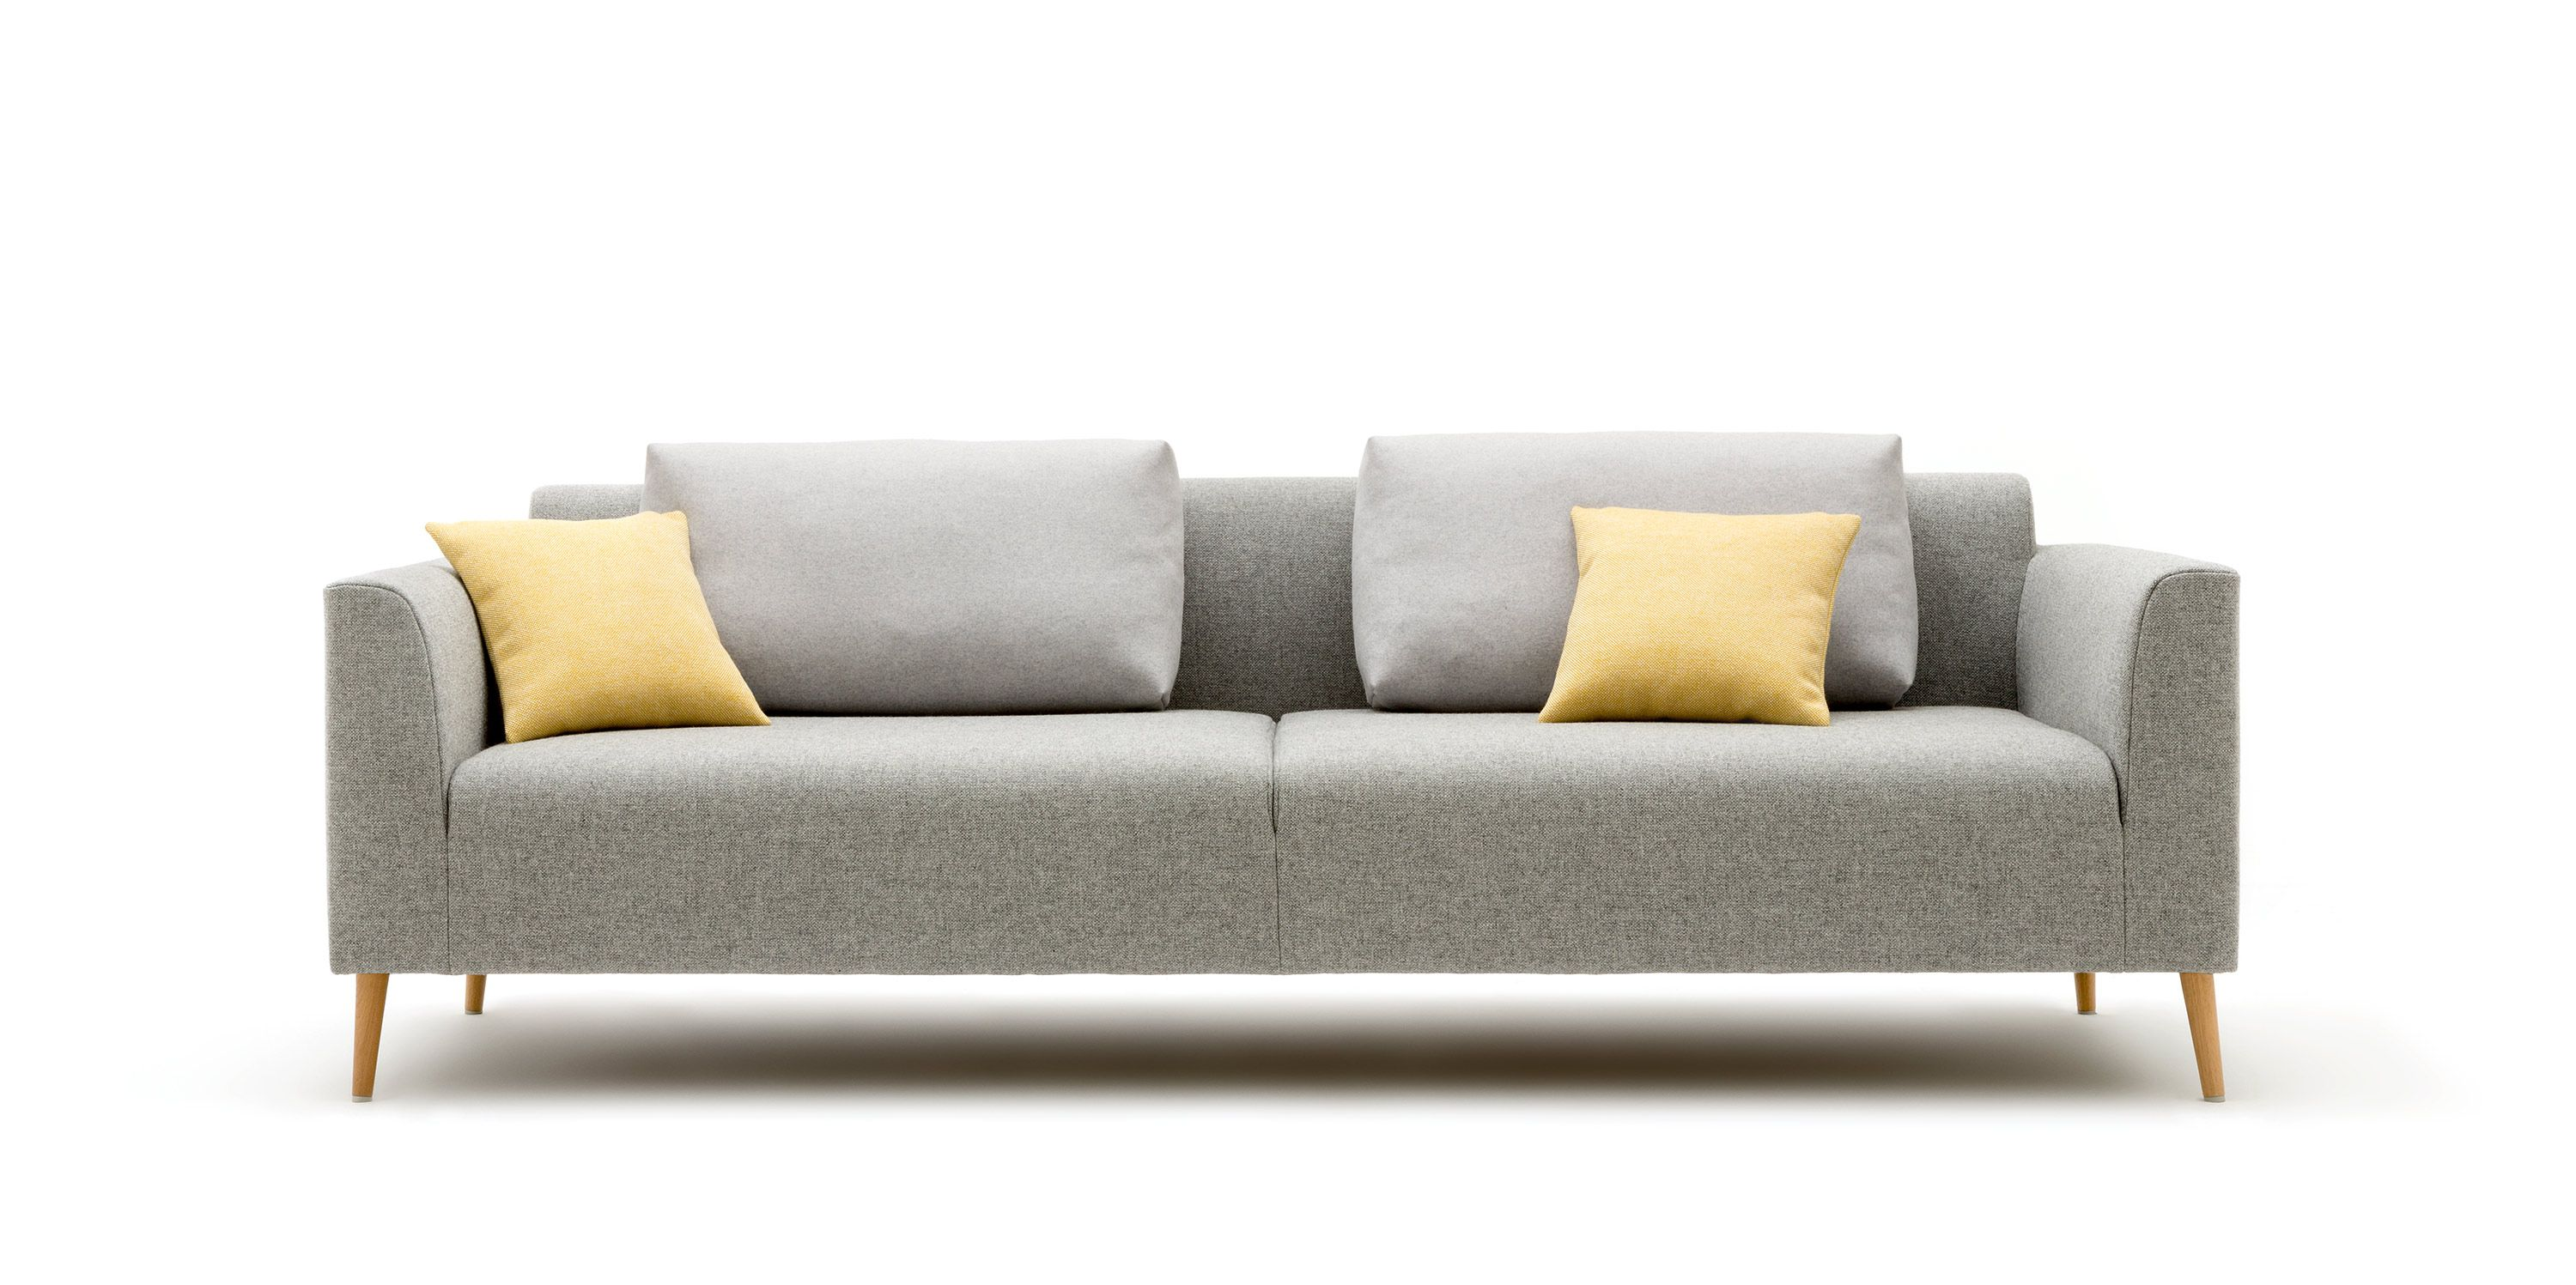 Sofa Magazin Freistil 162 家具 Pinterest Sofa Couch And Living Room